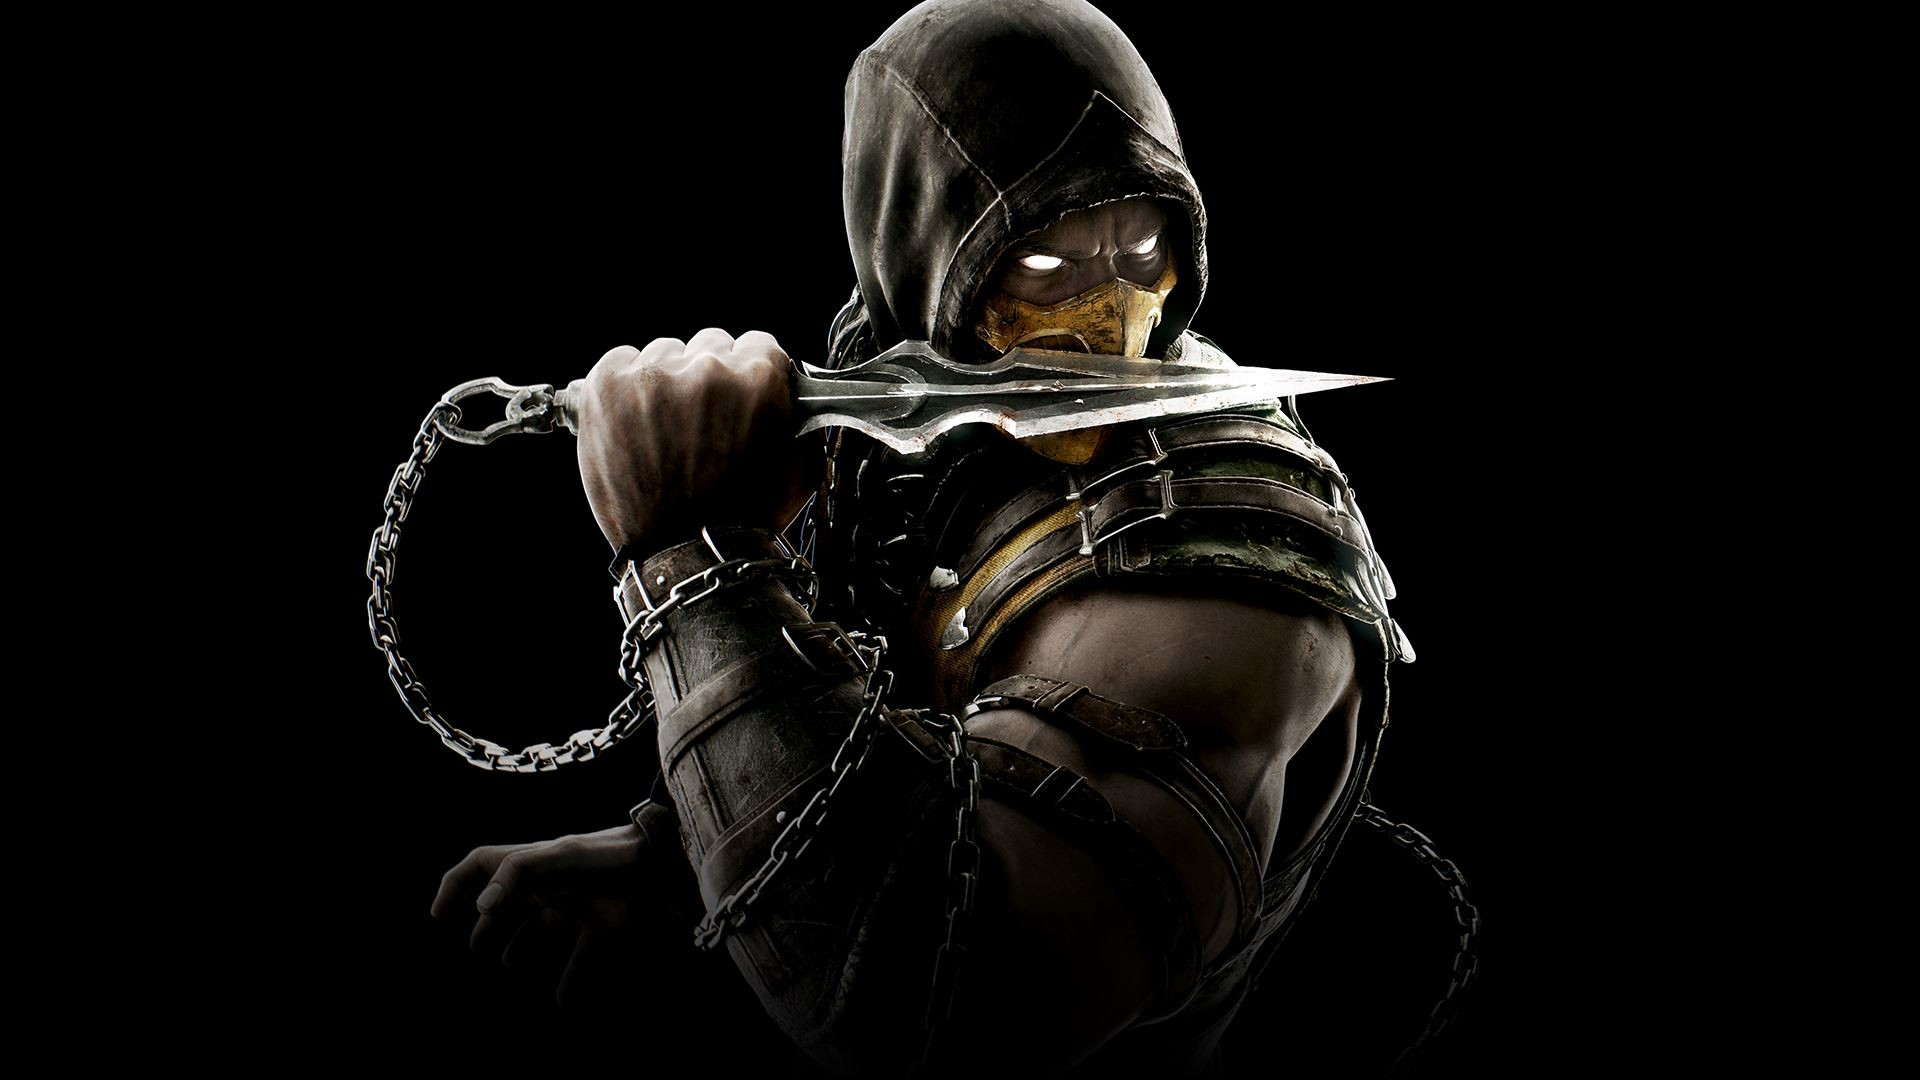 Pictures Of Scorpion From Mortal Kombat X Game - HD